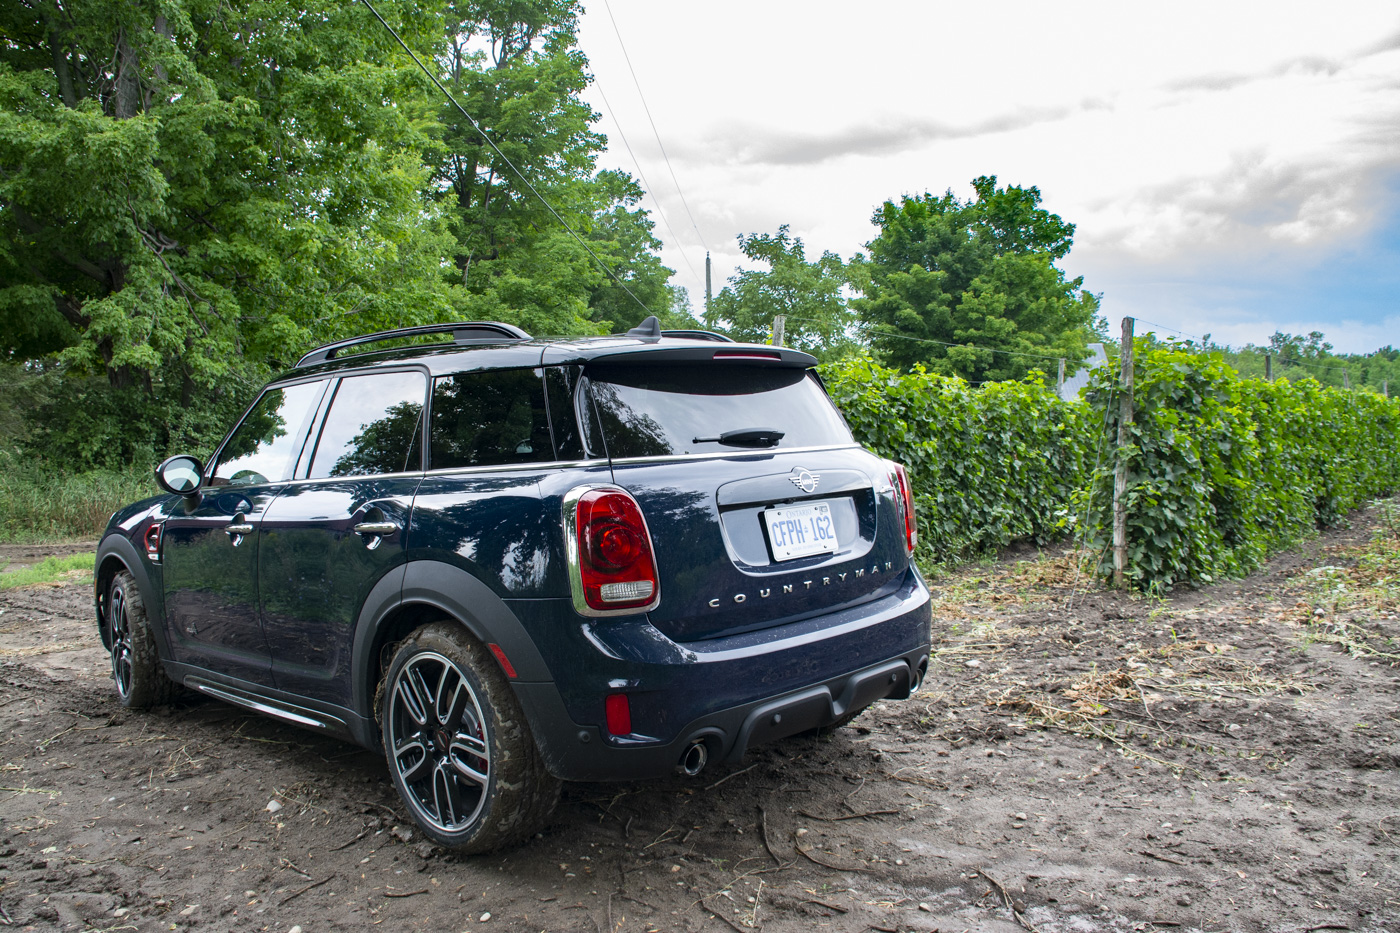 2019 Mini John Cooper Works Countryman Prince Edward County Road